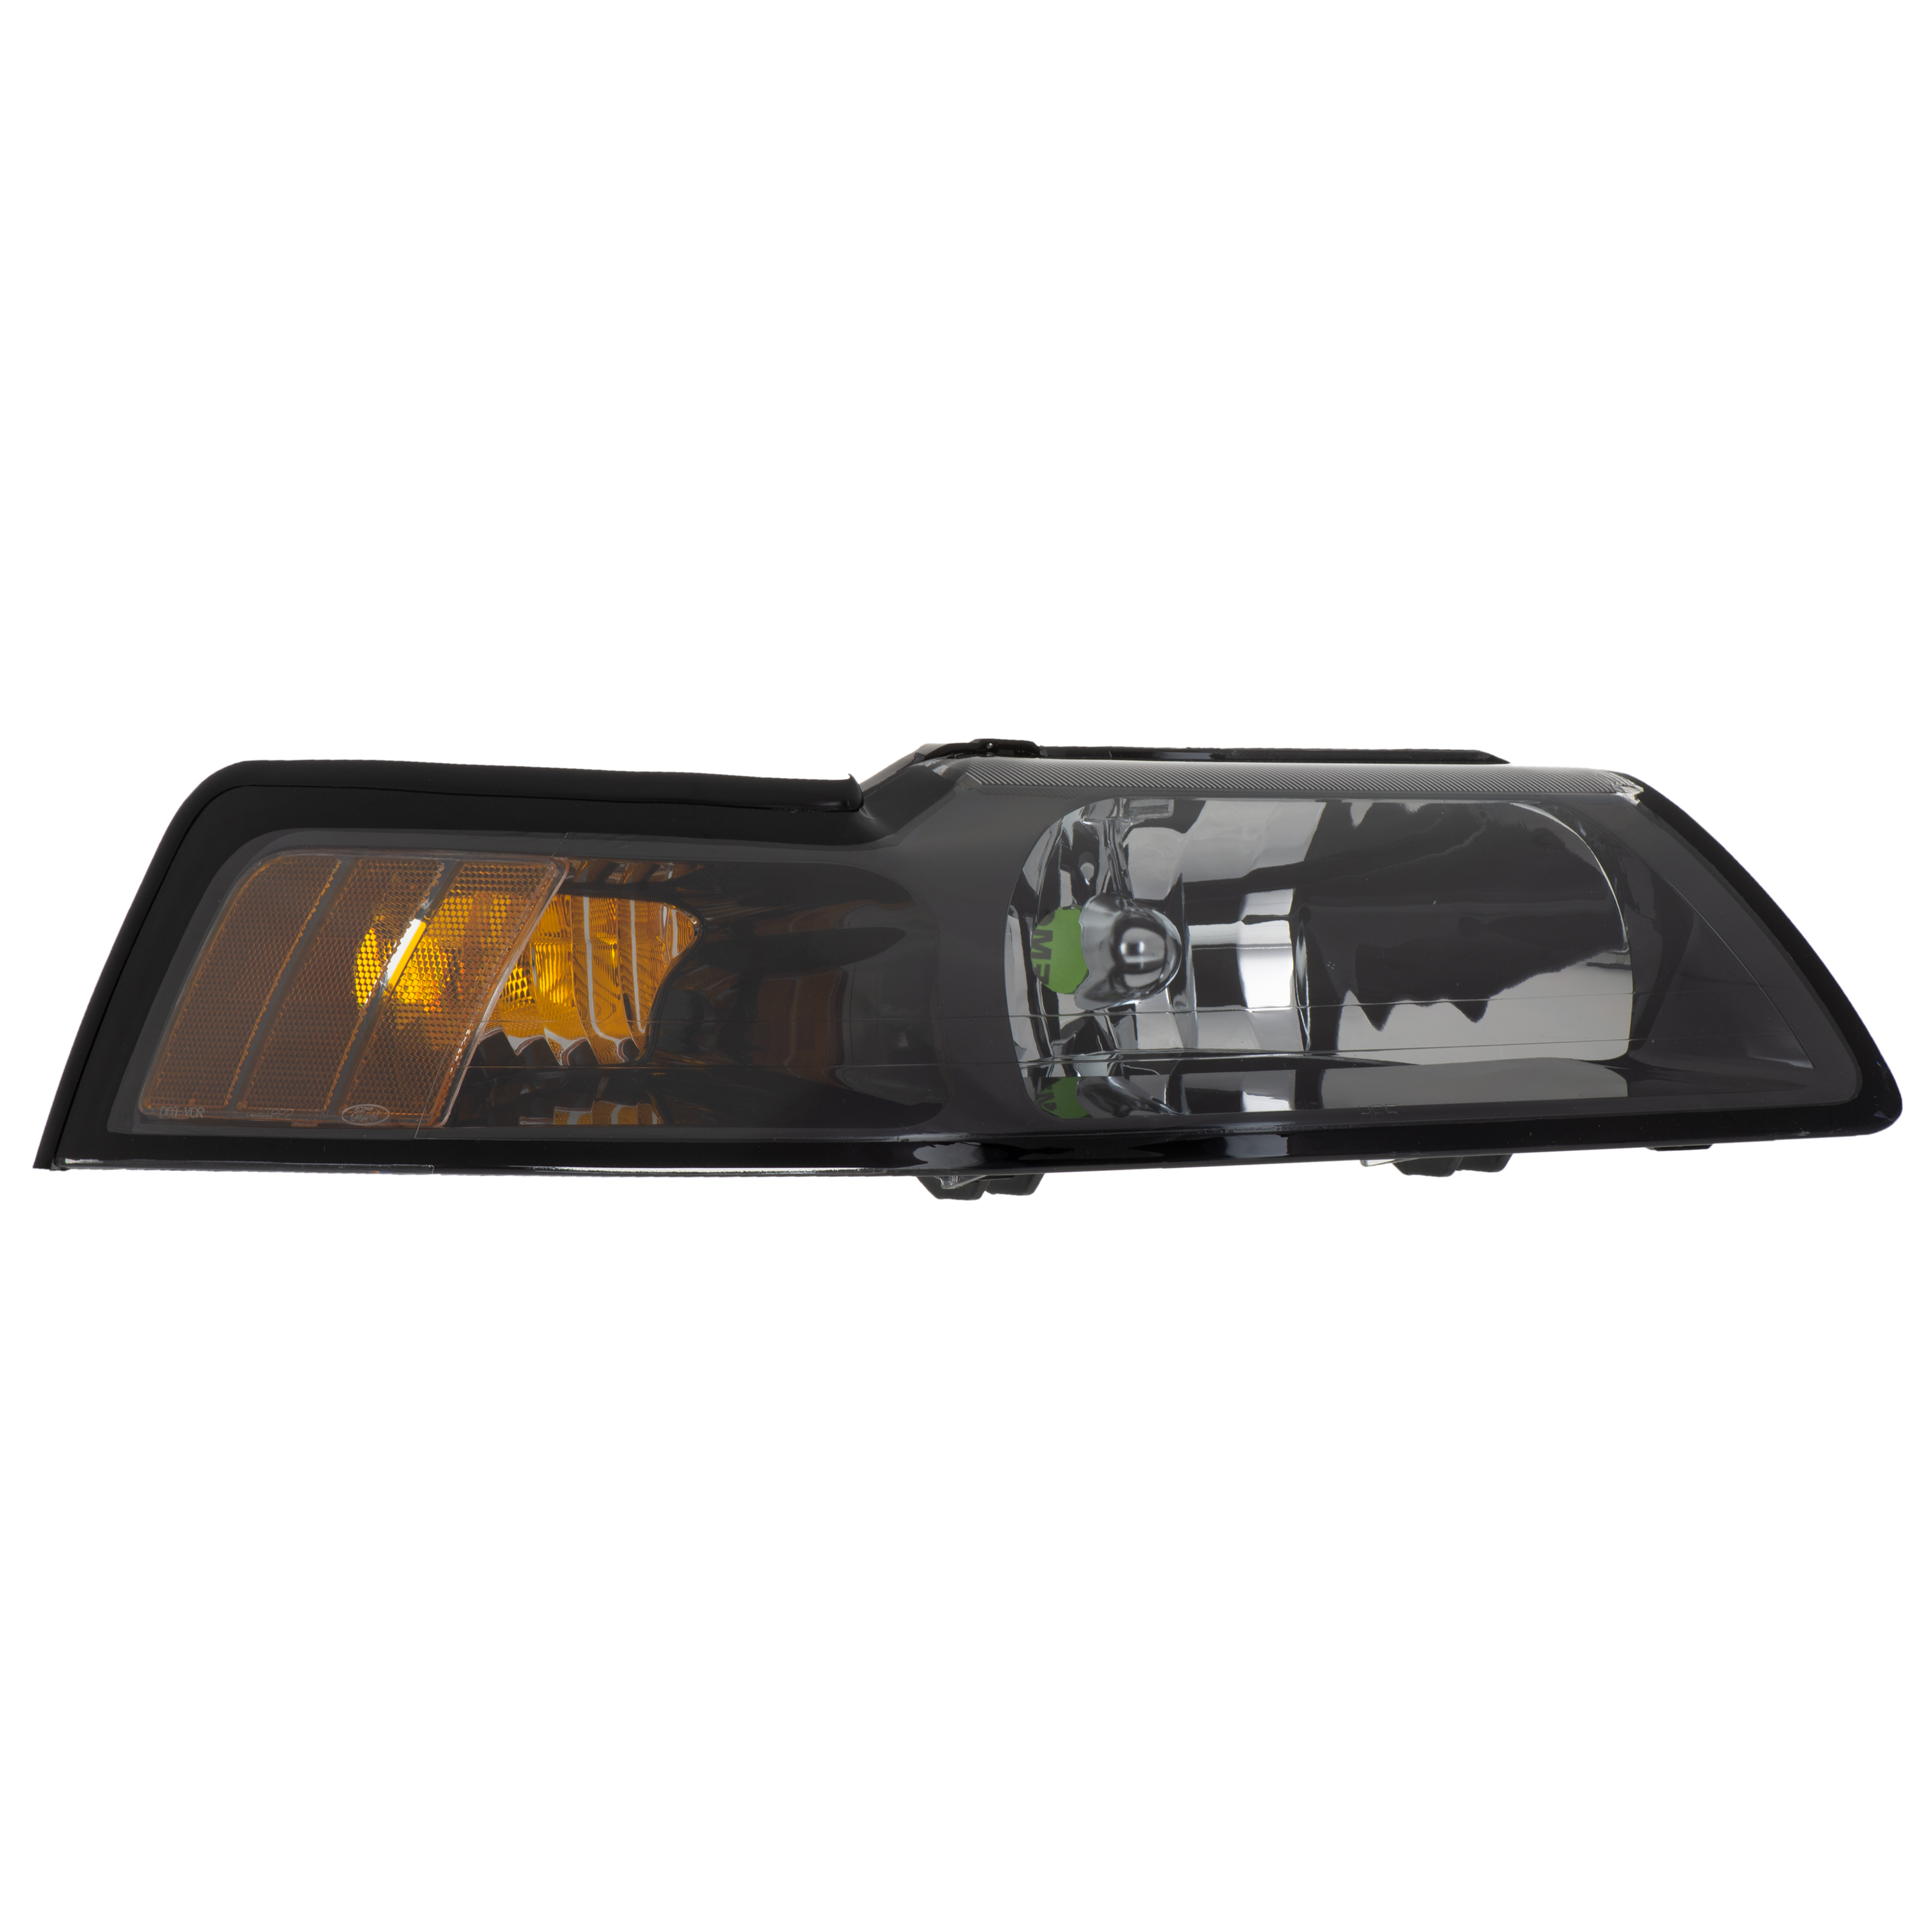 2001-2004 Ford Mustang RH Passenger Side Headlight Smoke Colored OEM NEW Genuine - Ford (3R3Z-13008-CA)